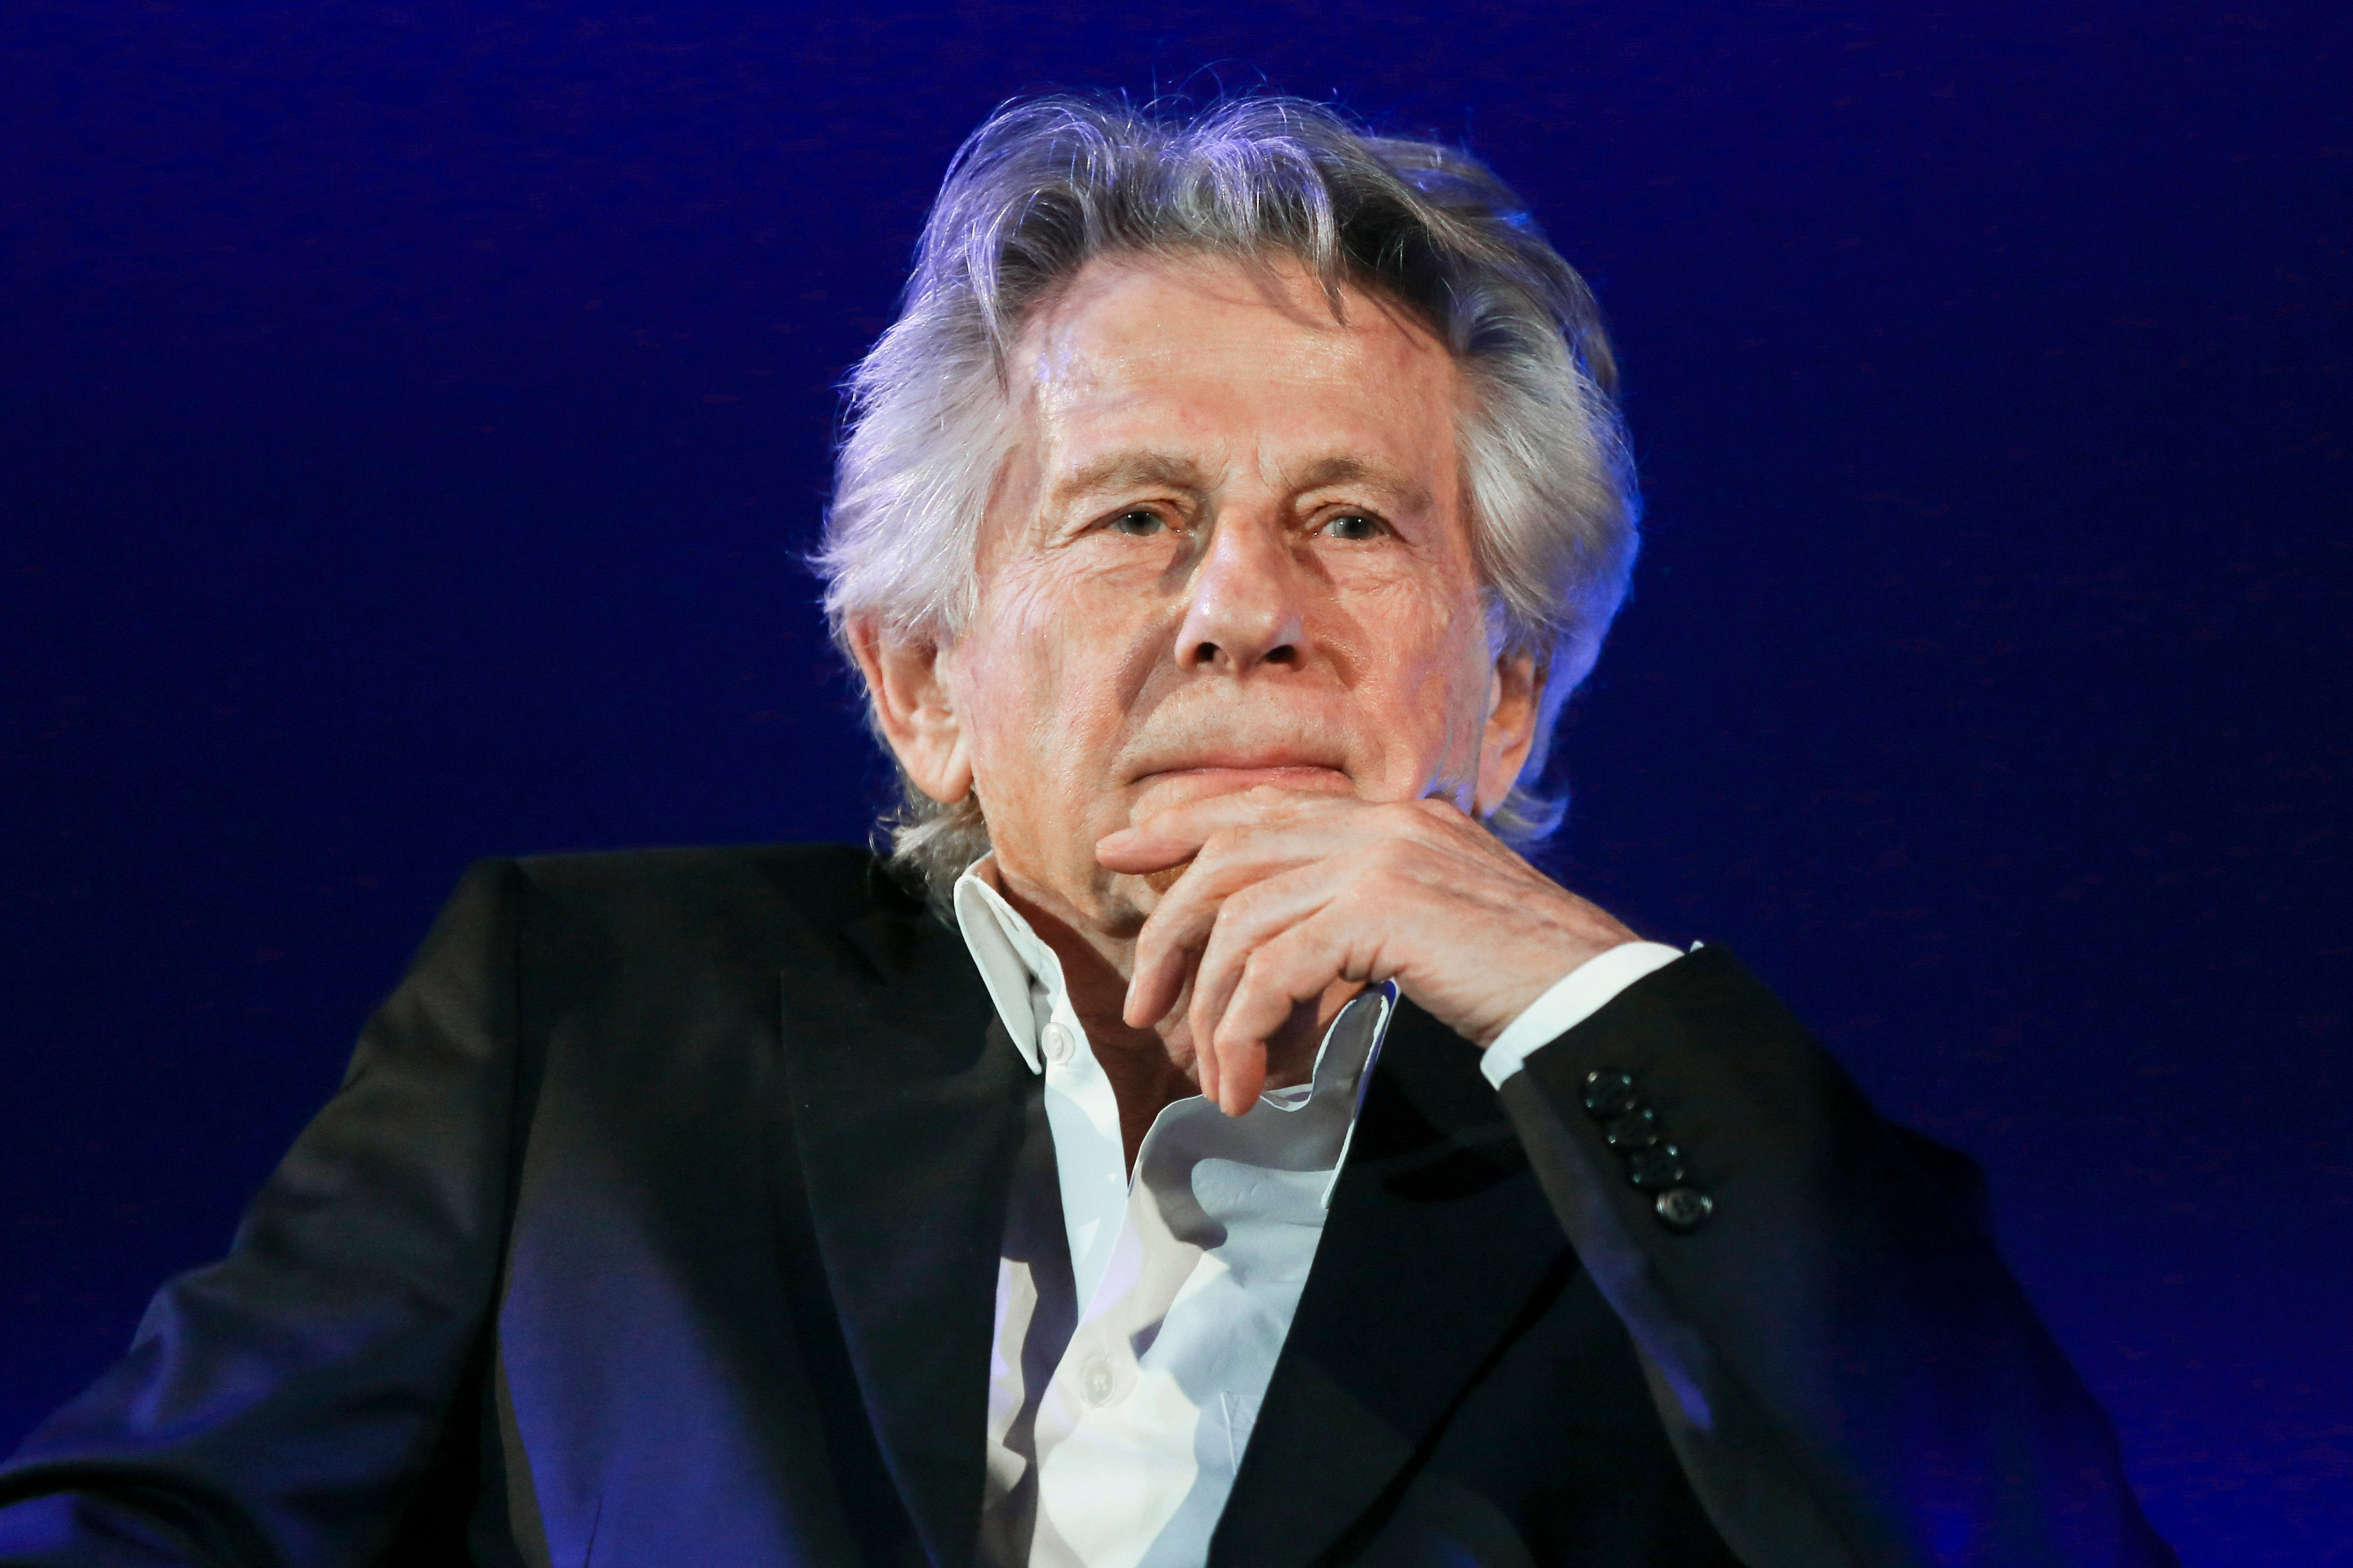 Roman Polanski Brands #MeToo Movement 'Mass Hysteria' As He Reveals Plans To Sue Film